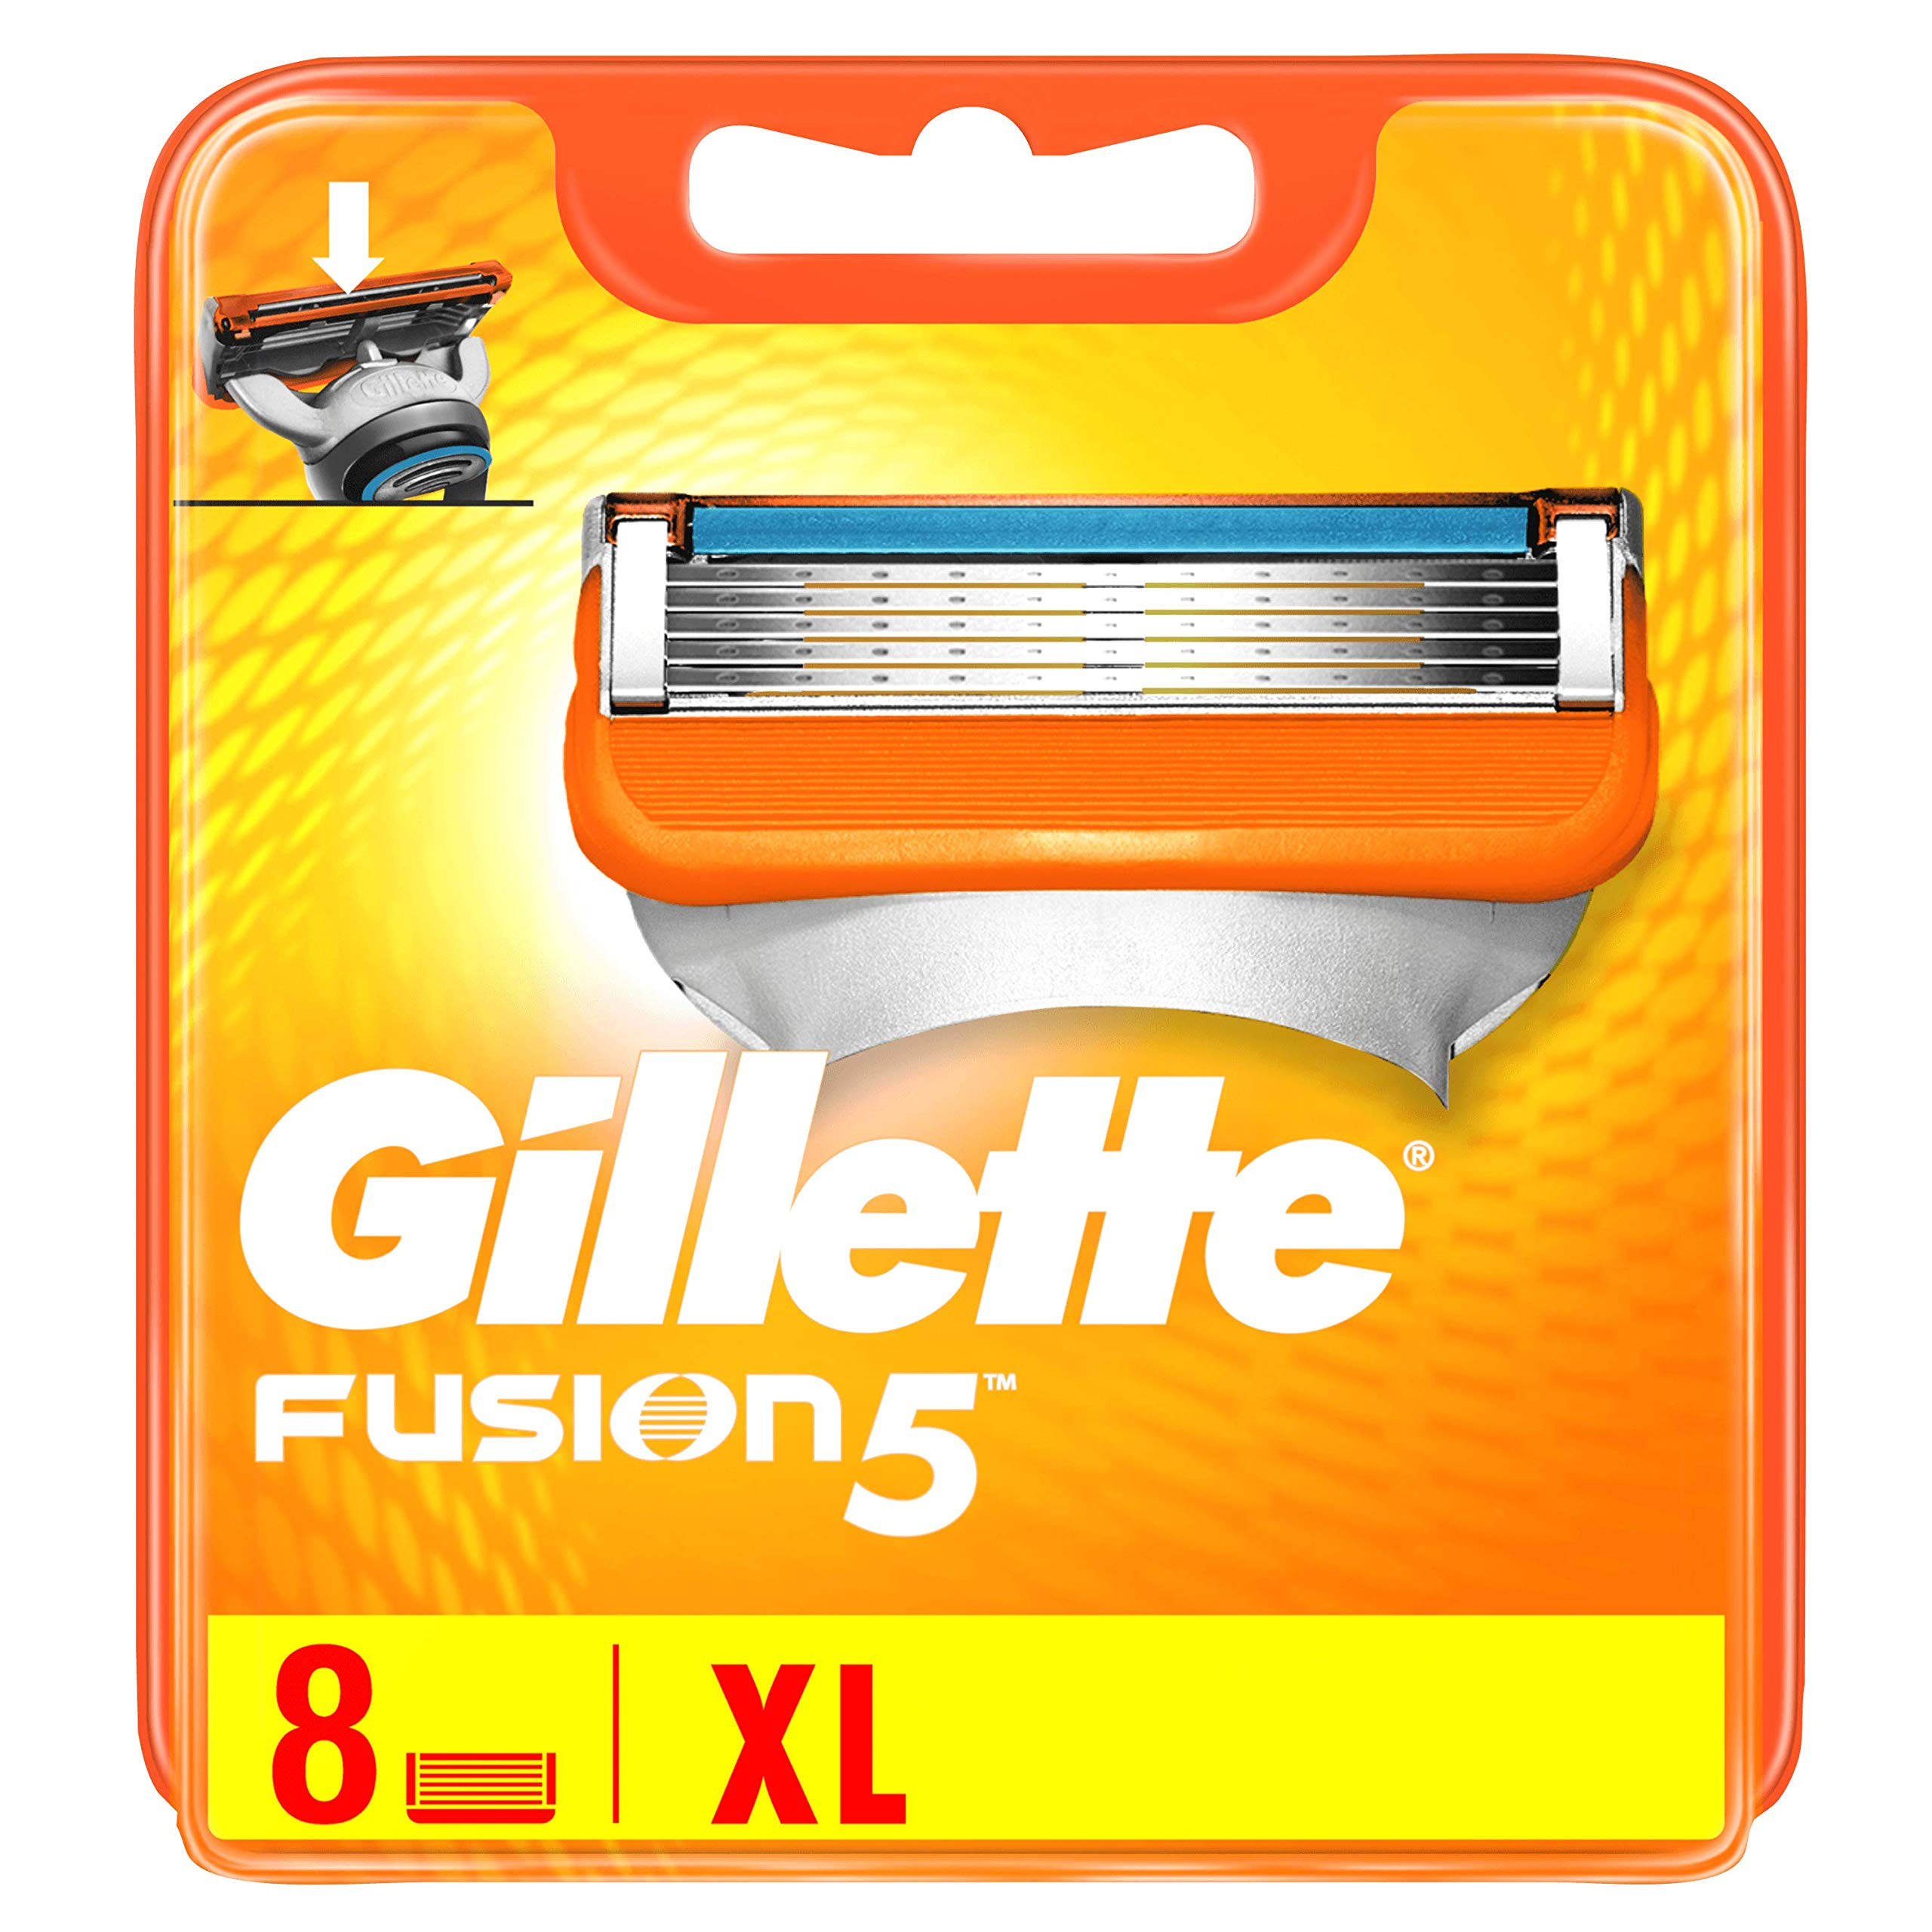 Gillette Fusion Razor Blades, 8 Refills New, Packaging May Vary product image